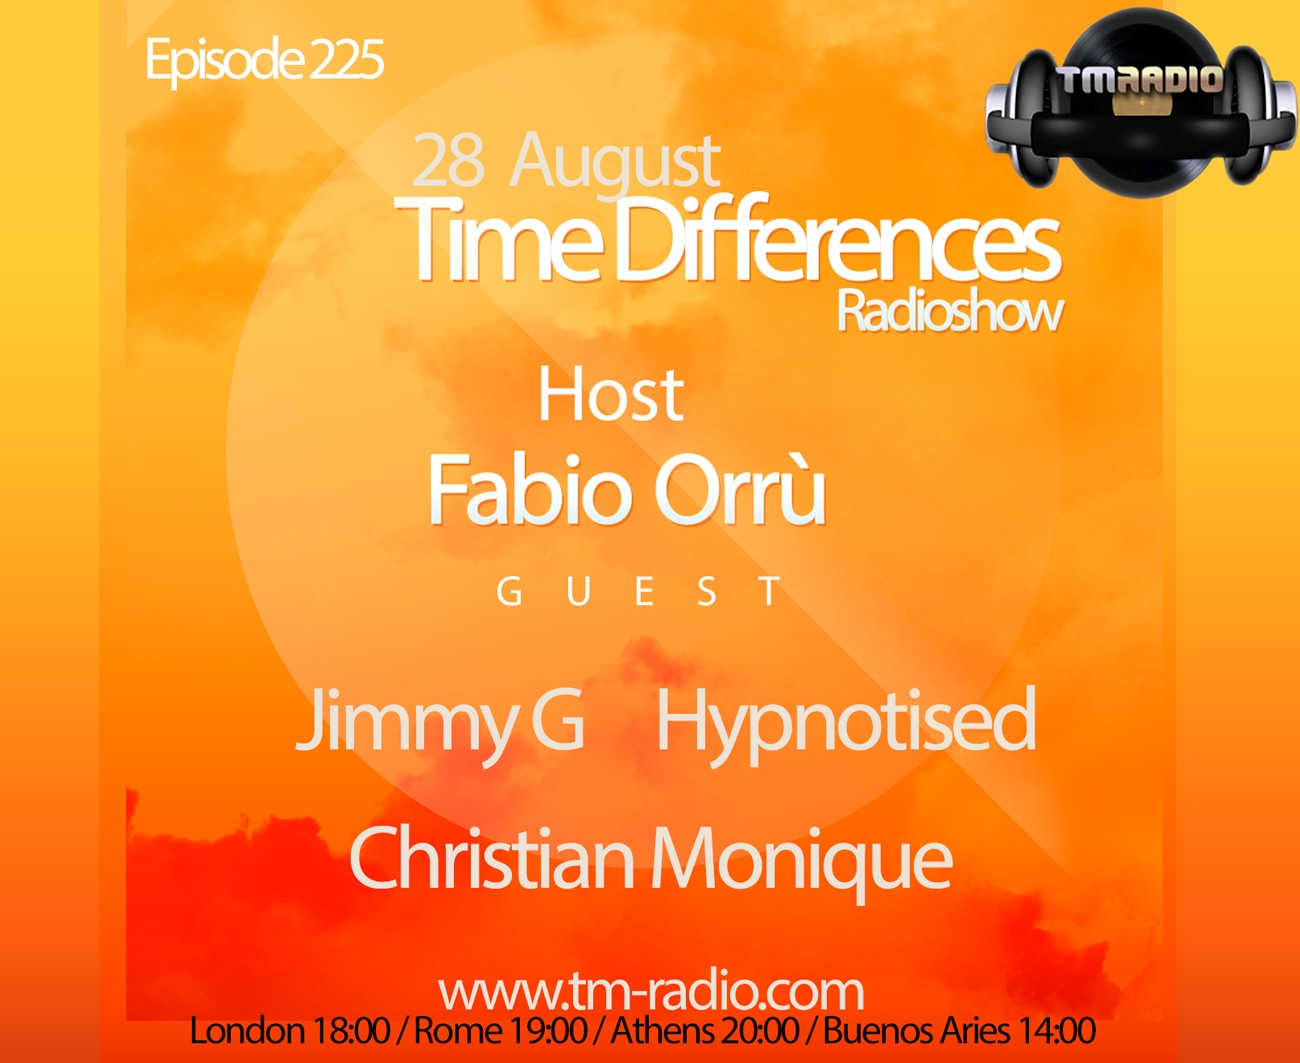 download → Fabio Orru, Hypnotized, Christian Monique, Jimmy G - Time Differences 225 on TM Radio - 28-Aug-2016